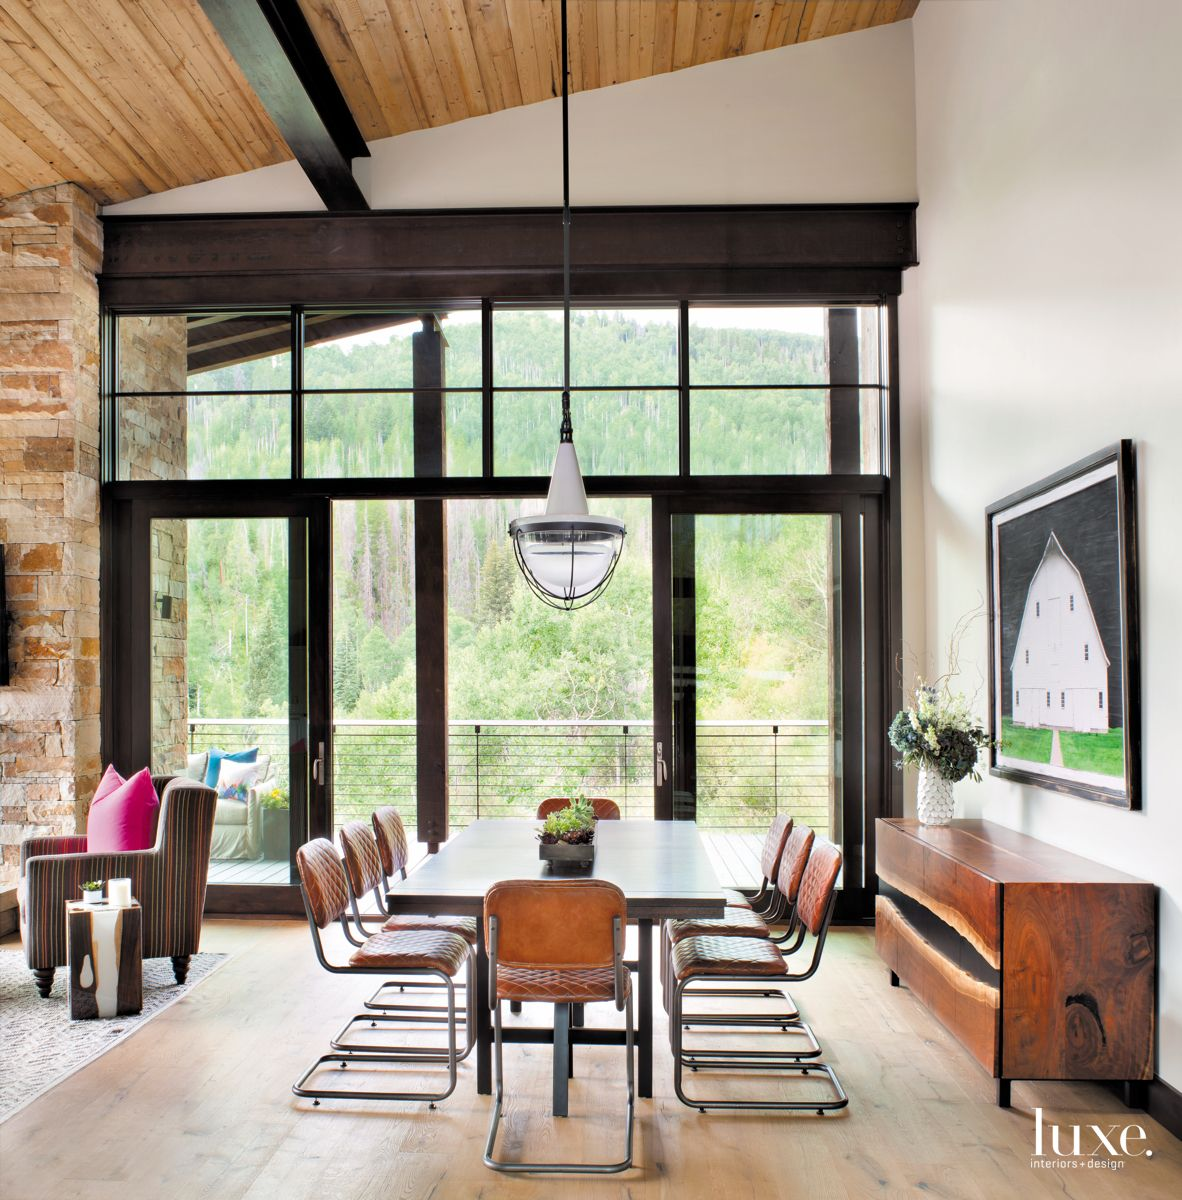 Barn Artwork Dining Room with Mountain Views